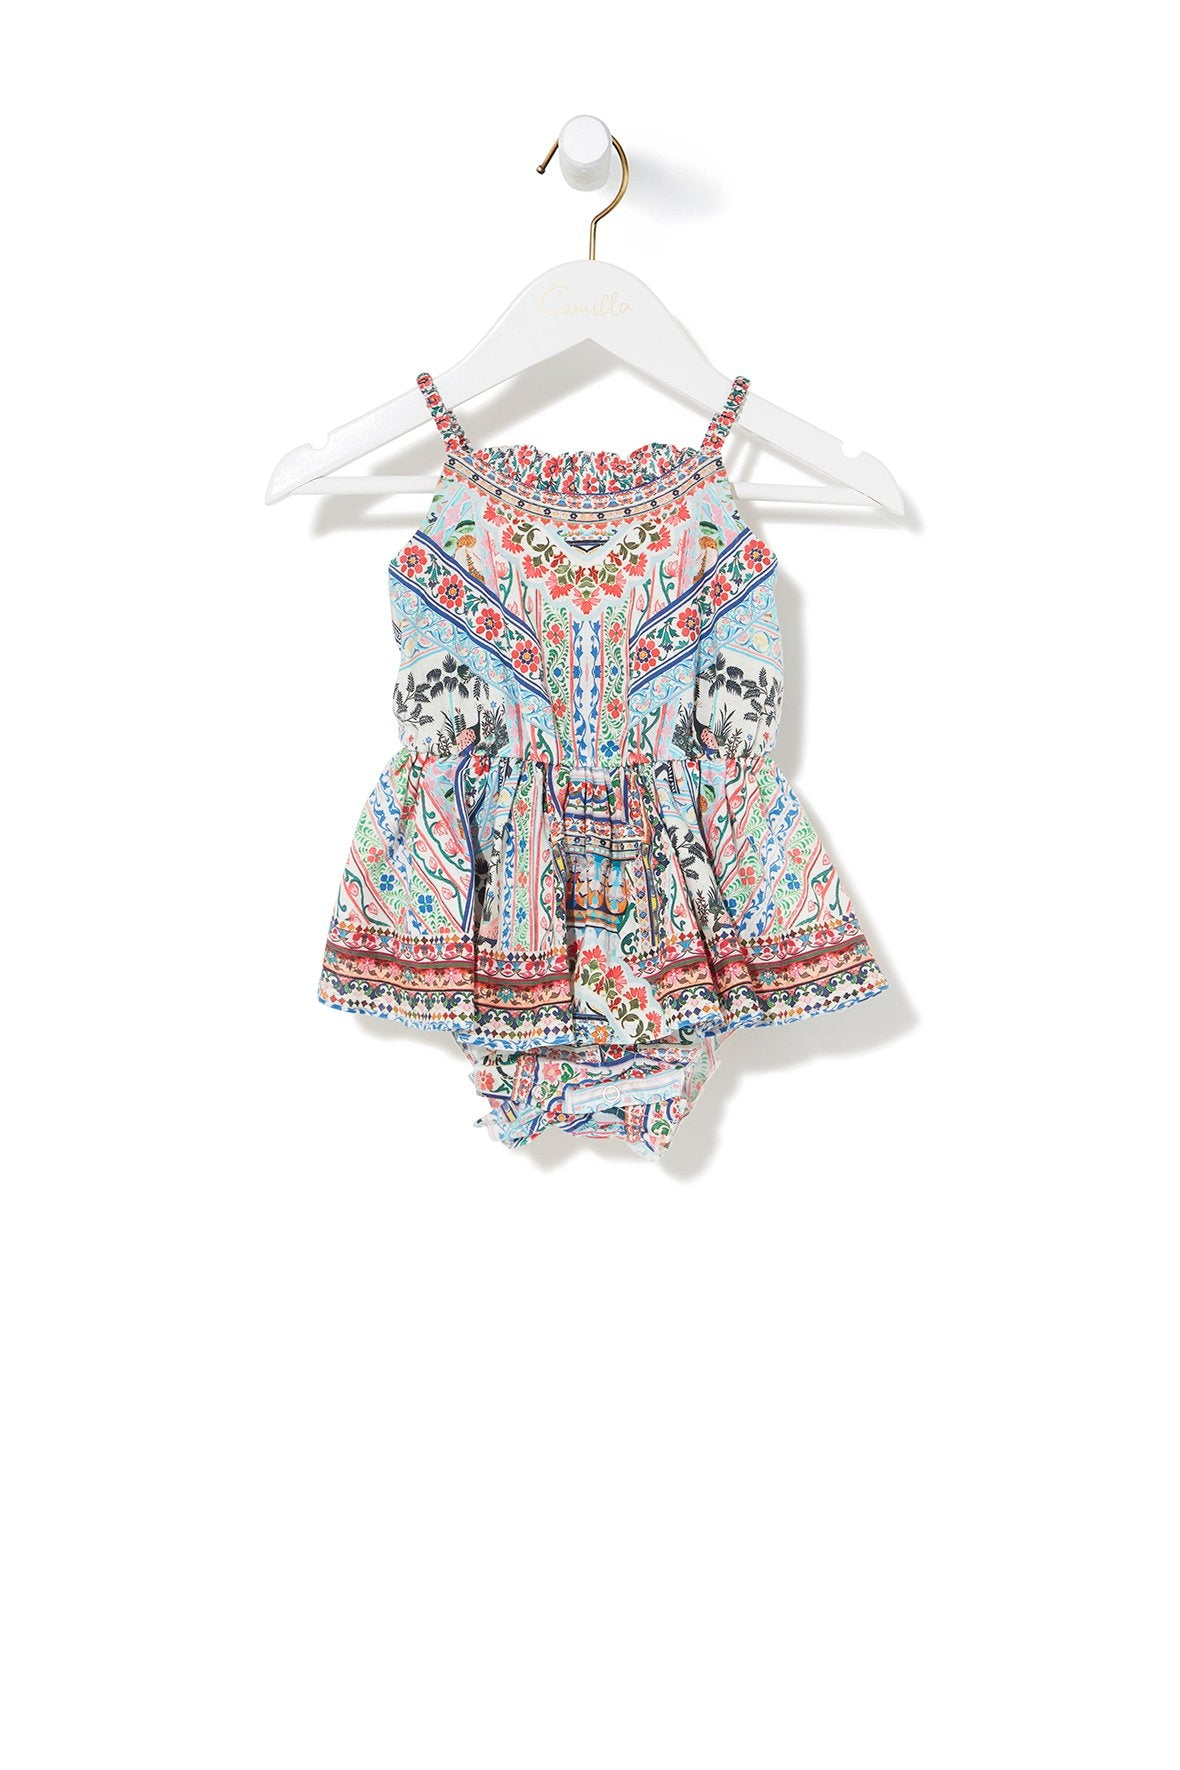 EVERLASTING LIGHT TODDLERS JUMP DRESS